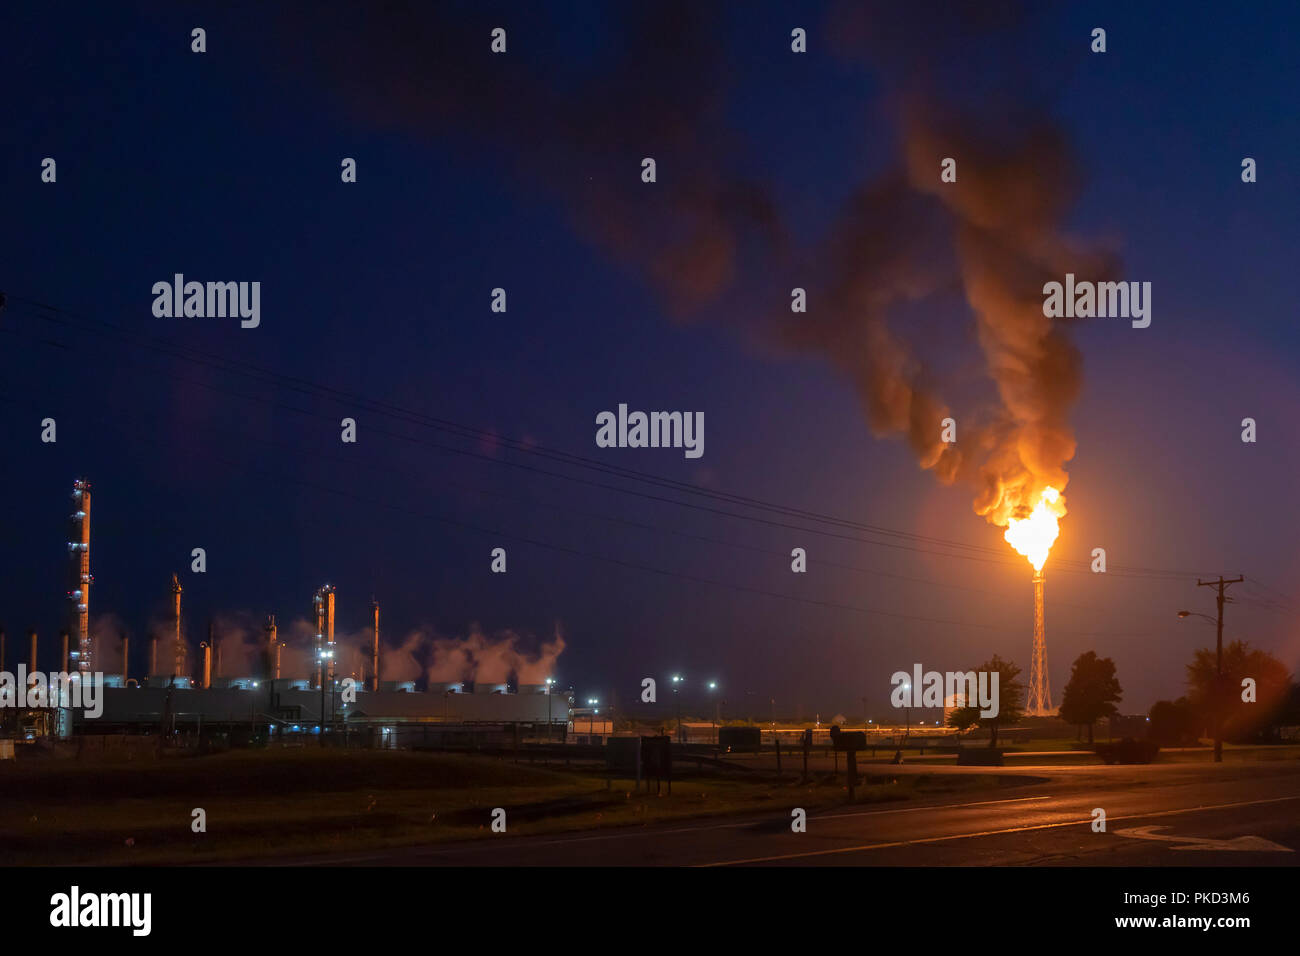 Morris, Illinois - A large gas flare at LyondellBasell's Equistar Chemicals plant. - Stock Image